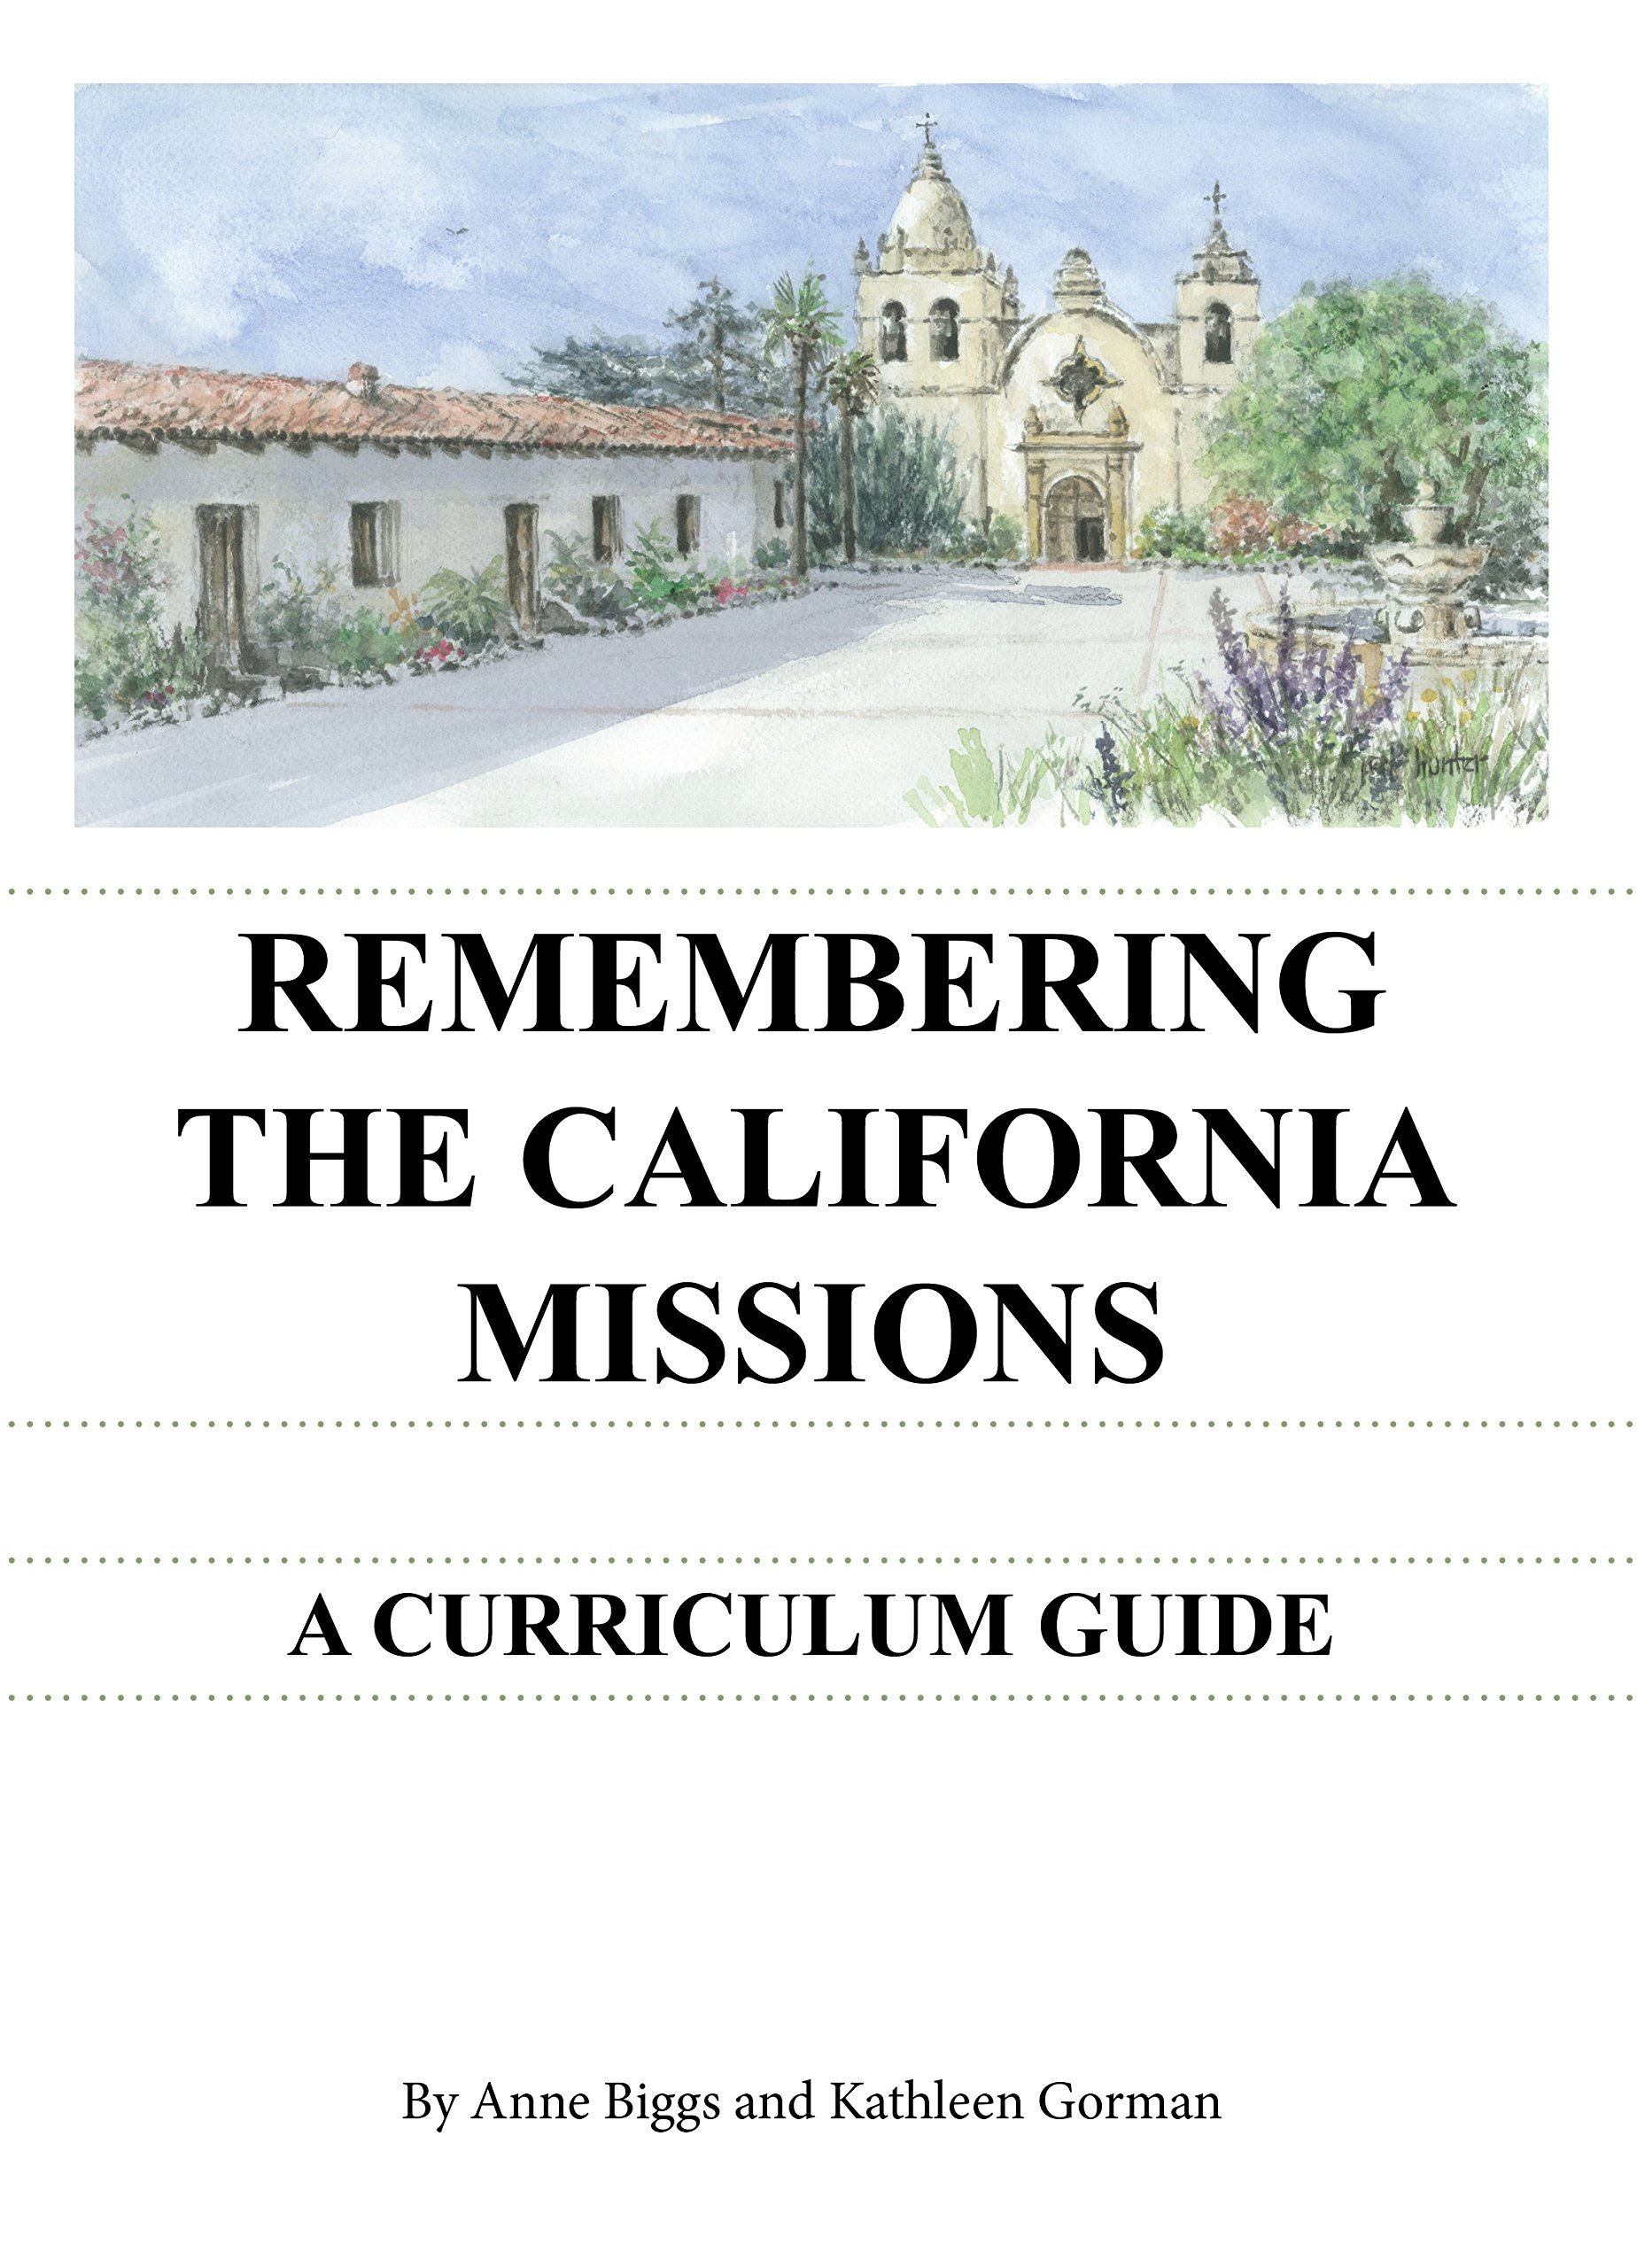 Remembering the California Missions: A Curriculum Guide